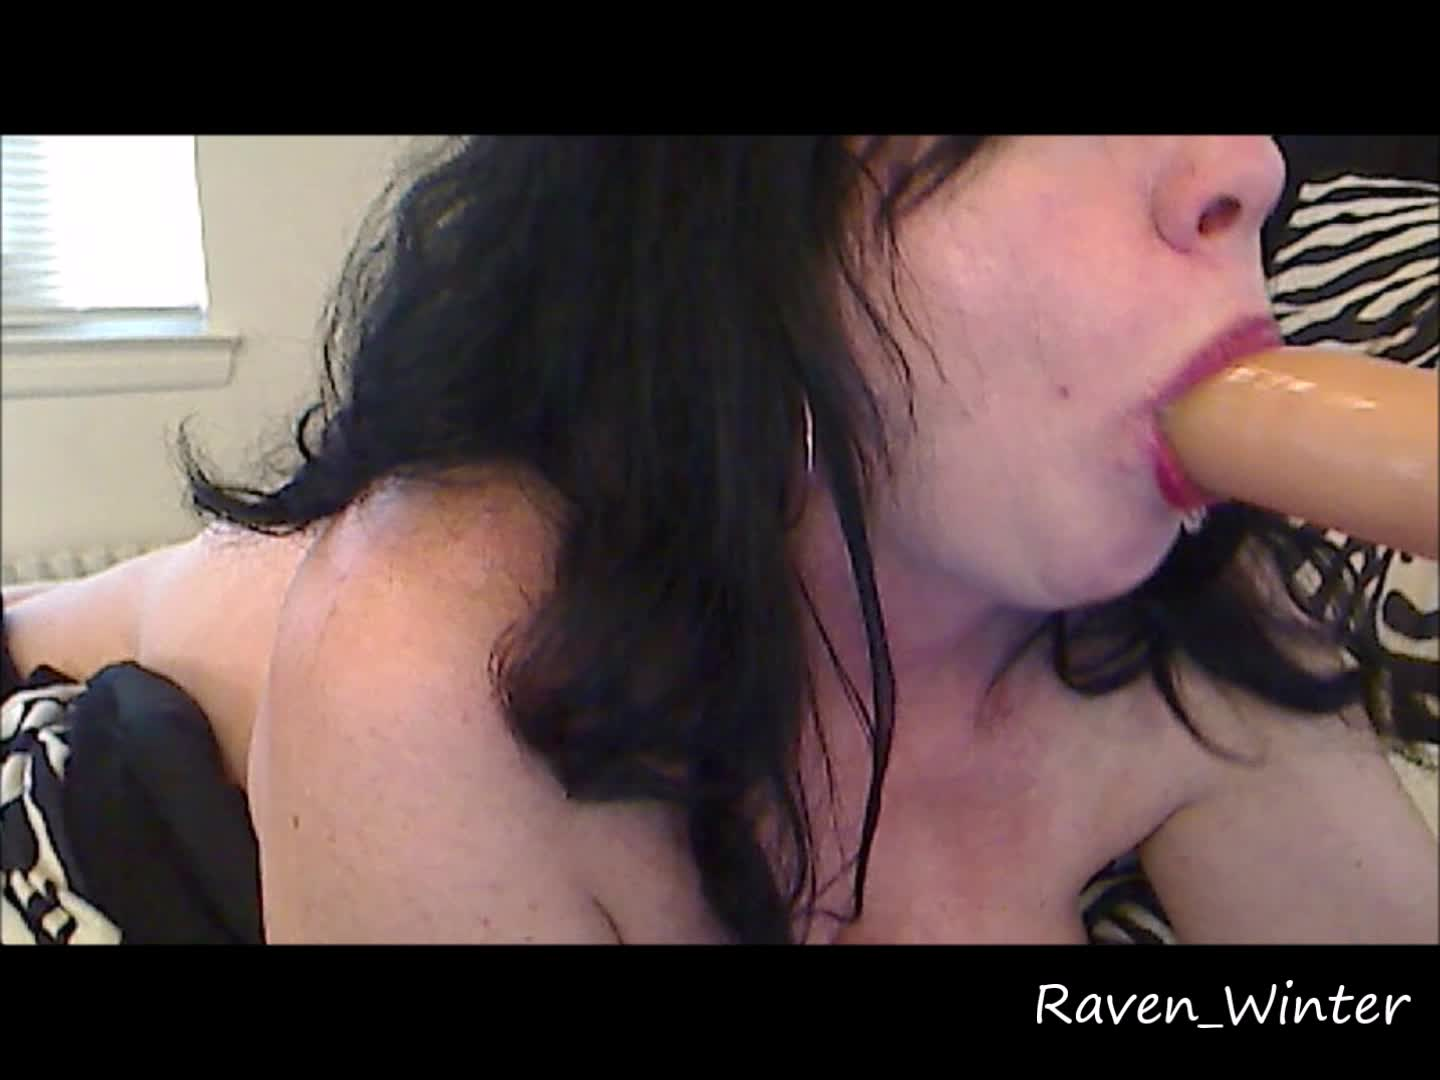 Raven_Winter'd vid